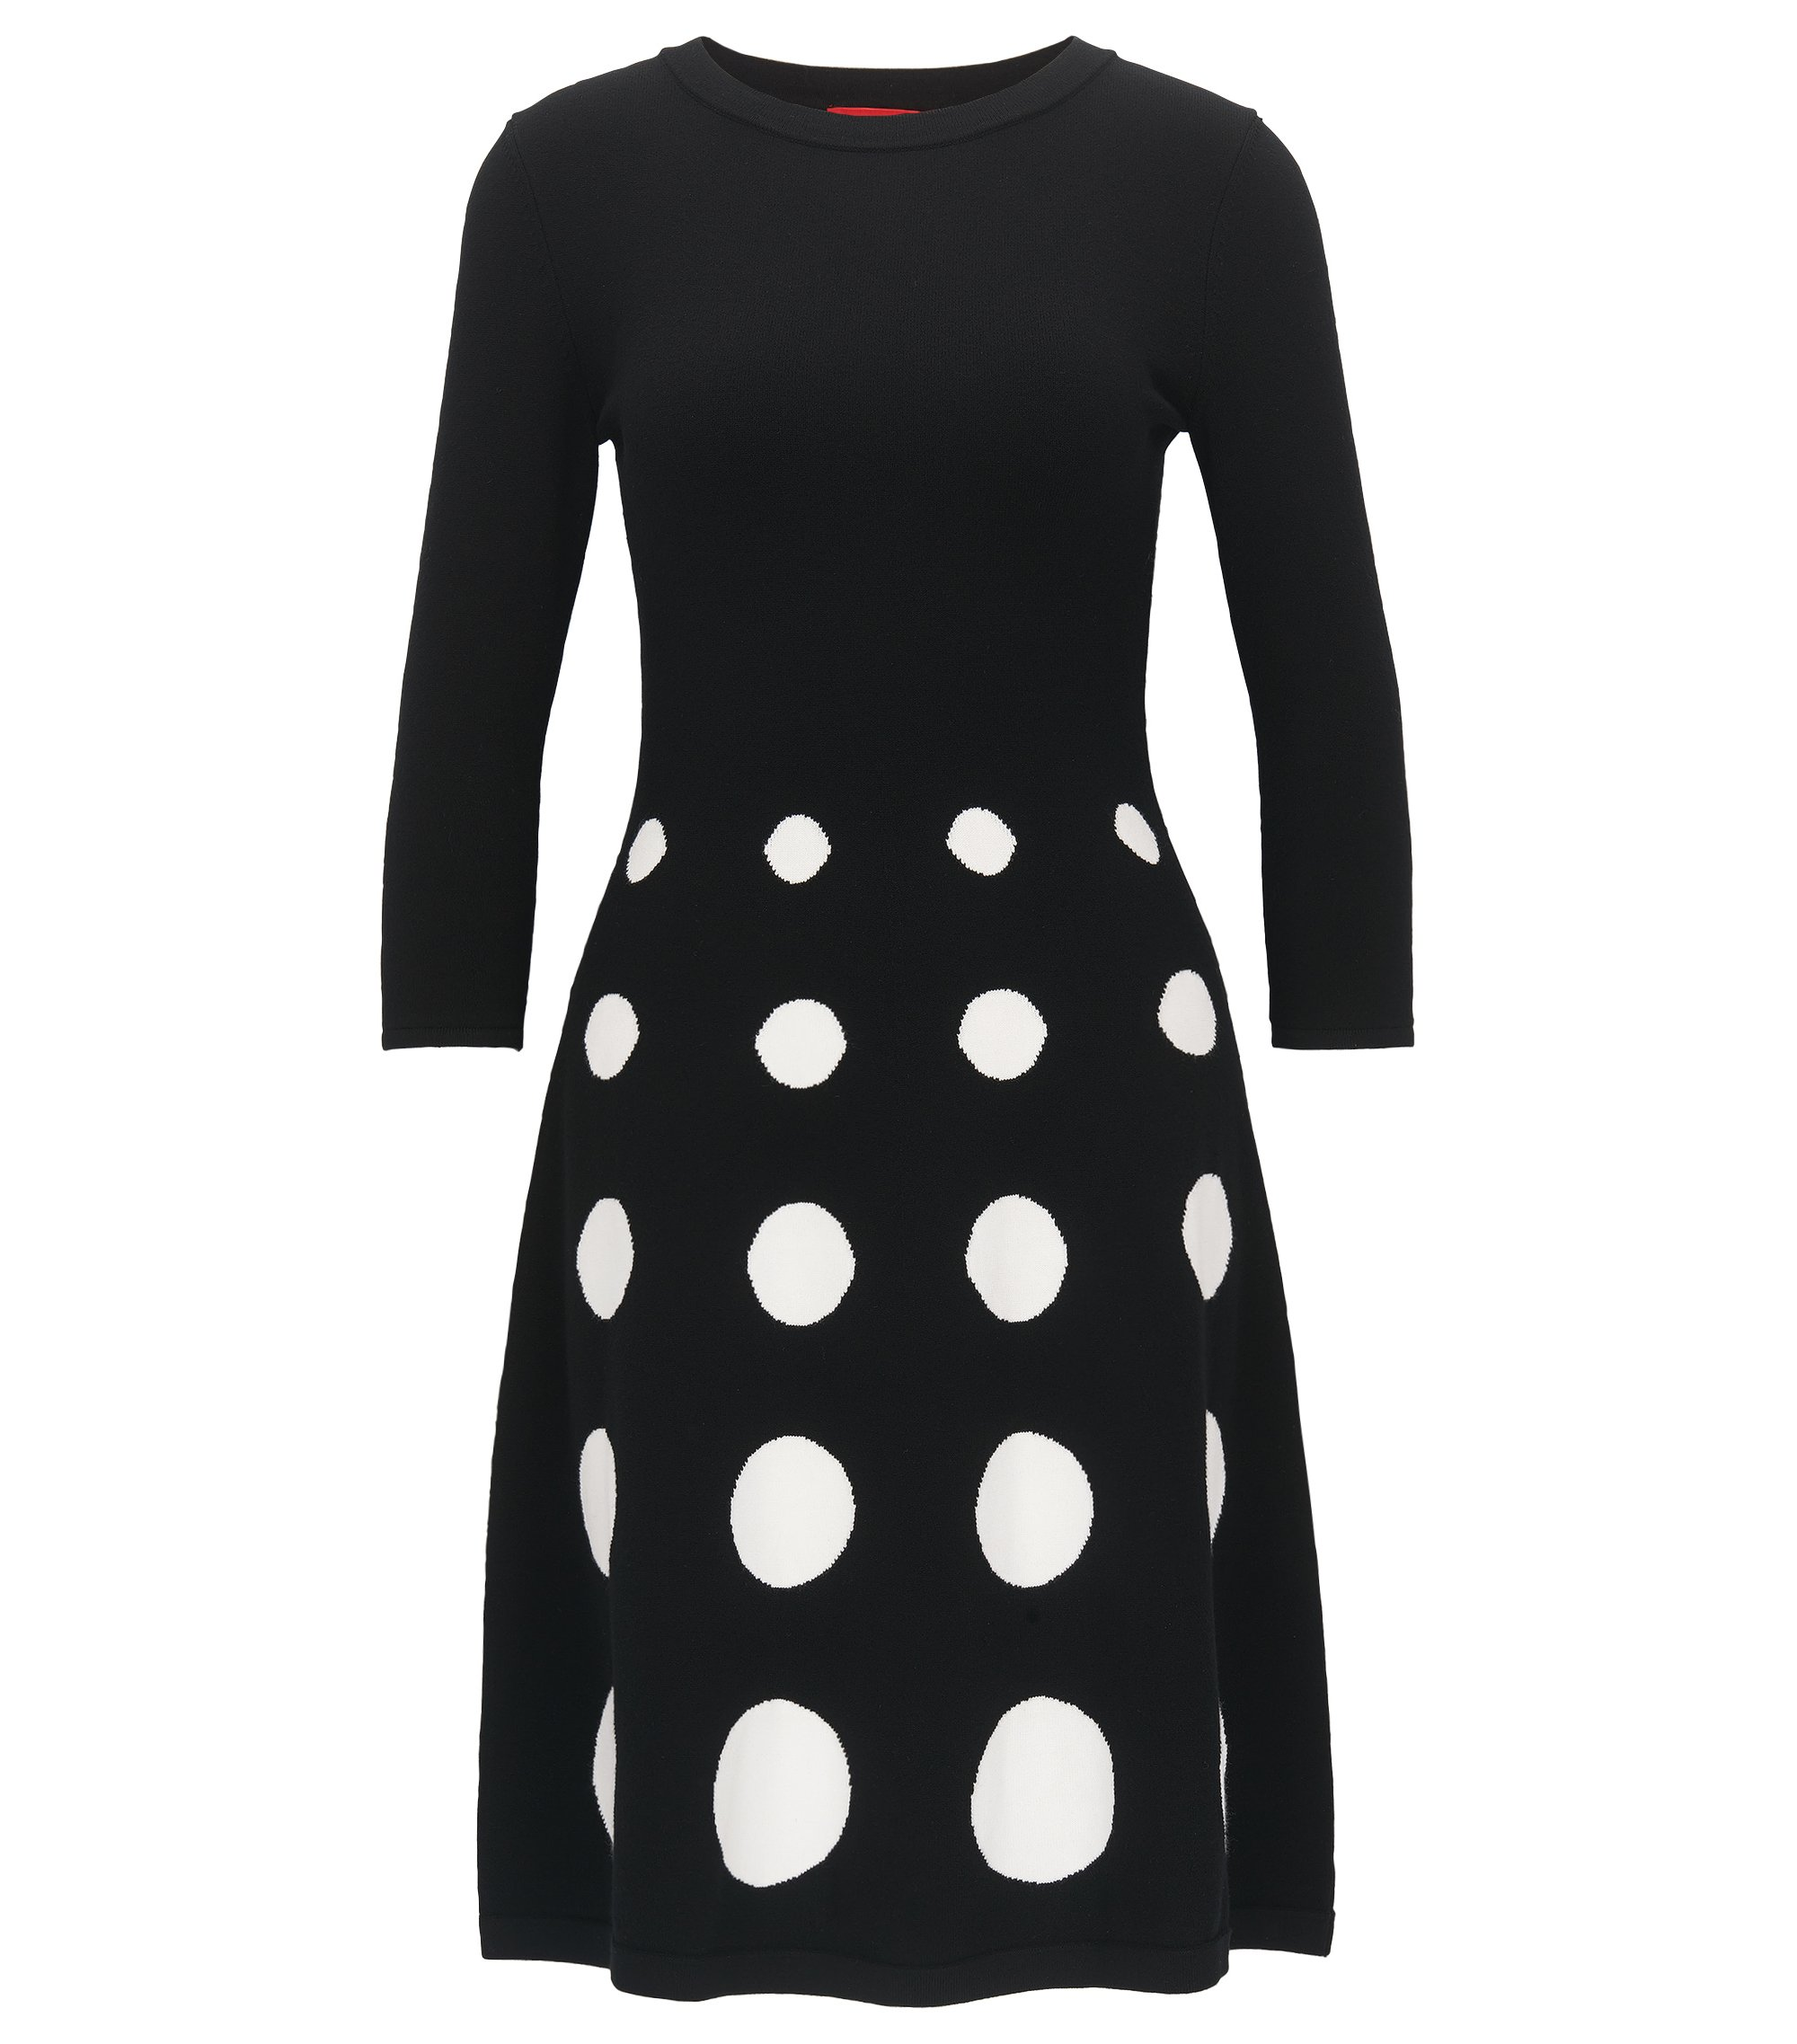 Slim-fit dress in knitted jacquard, Patterned